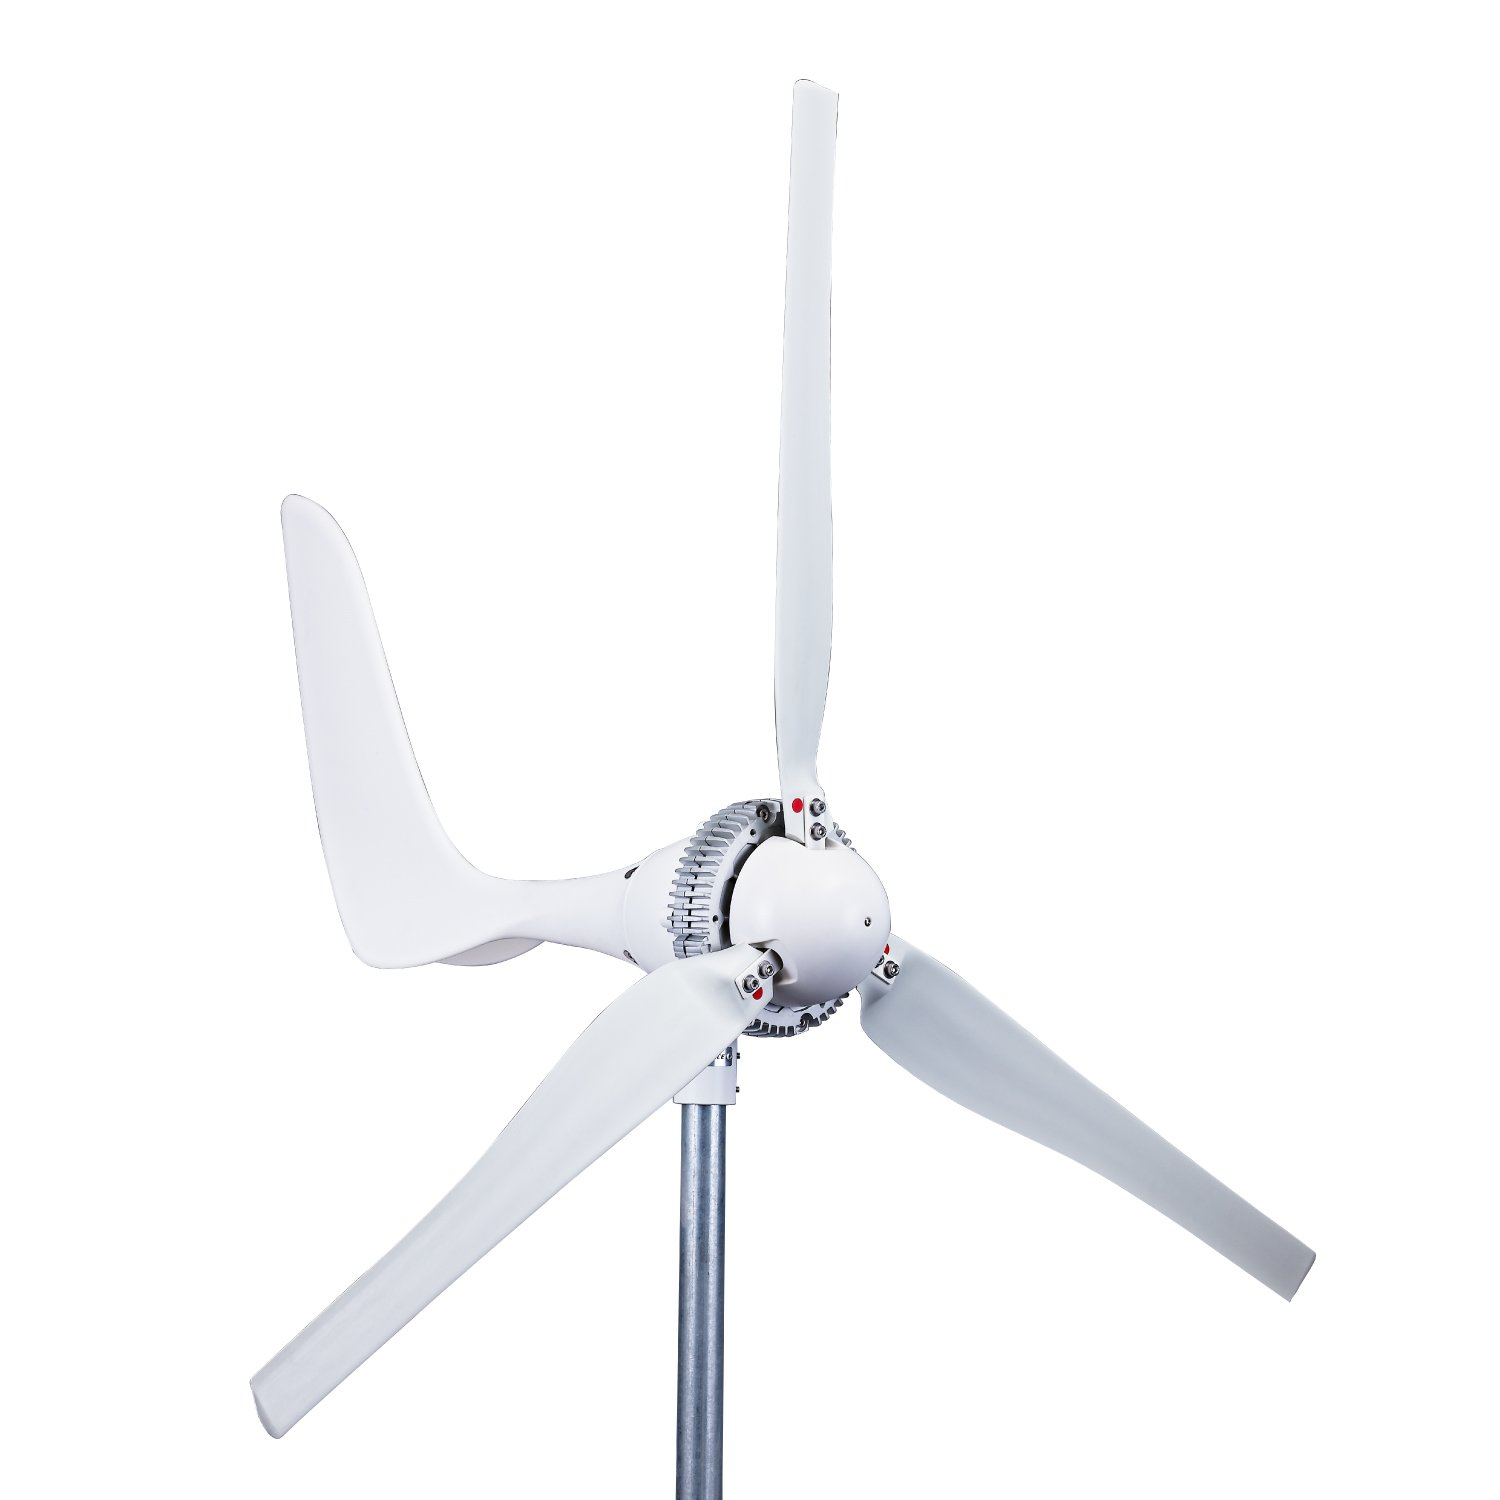 Windmill 1500w 24v 60a Wind Turbine Generator Kit Mppt Home Wiring Basics Charge Controller Included Automatic And Manual Breaking System Amp Meter